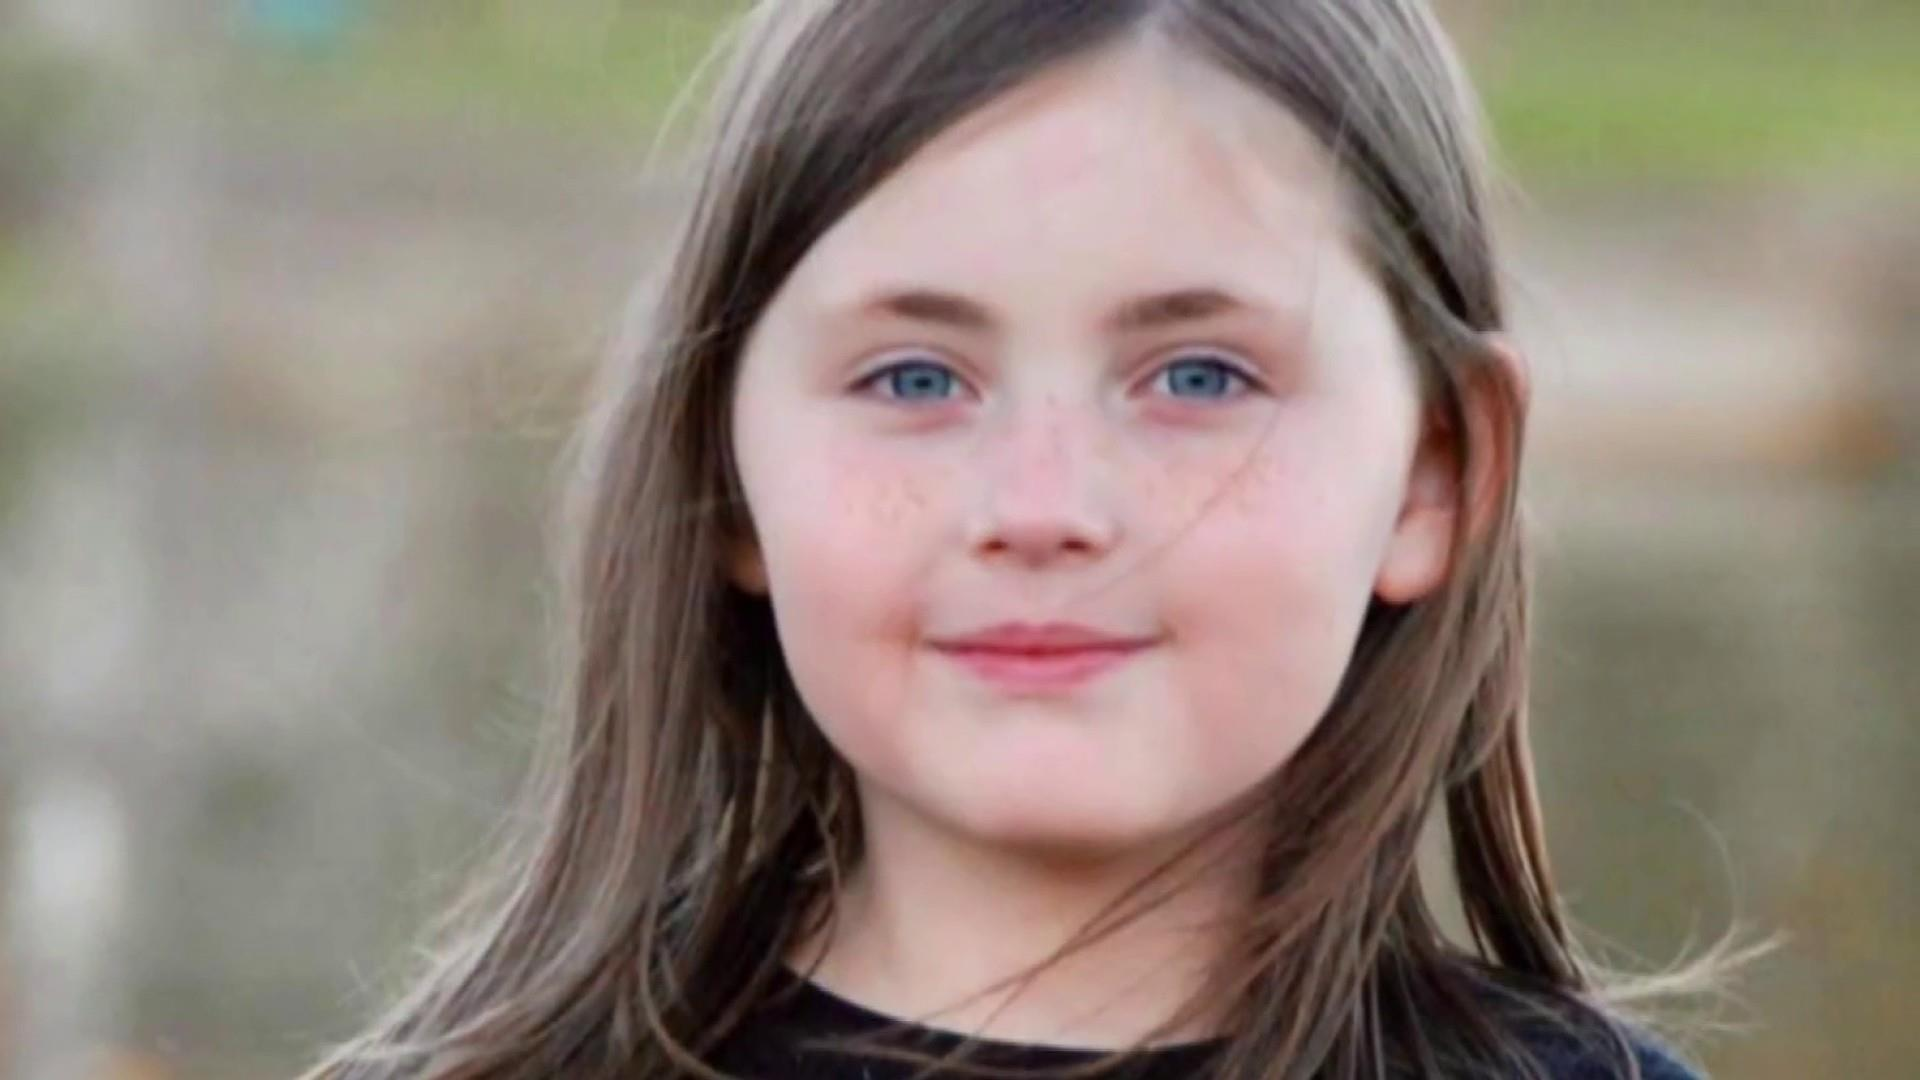 8-year-old kidnapped while walking with her mom found